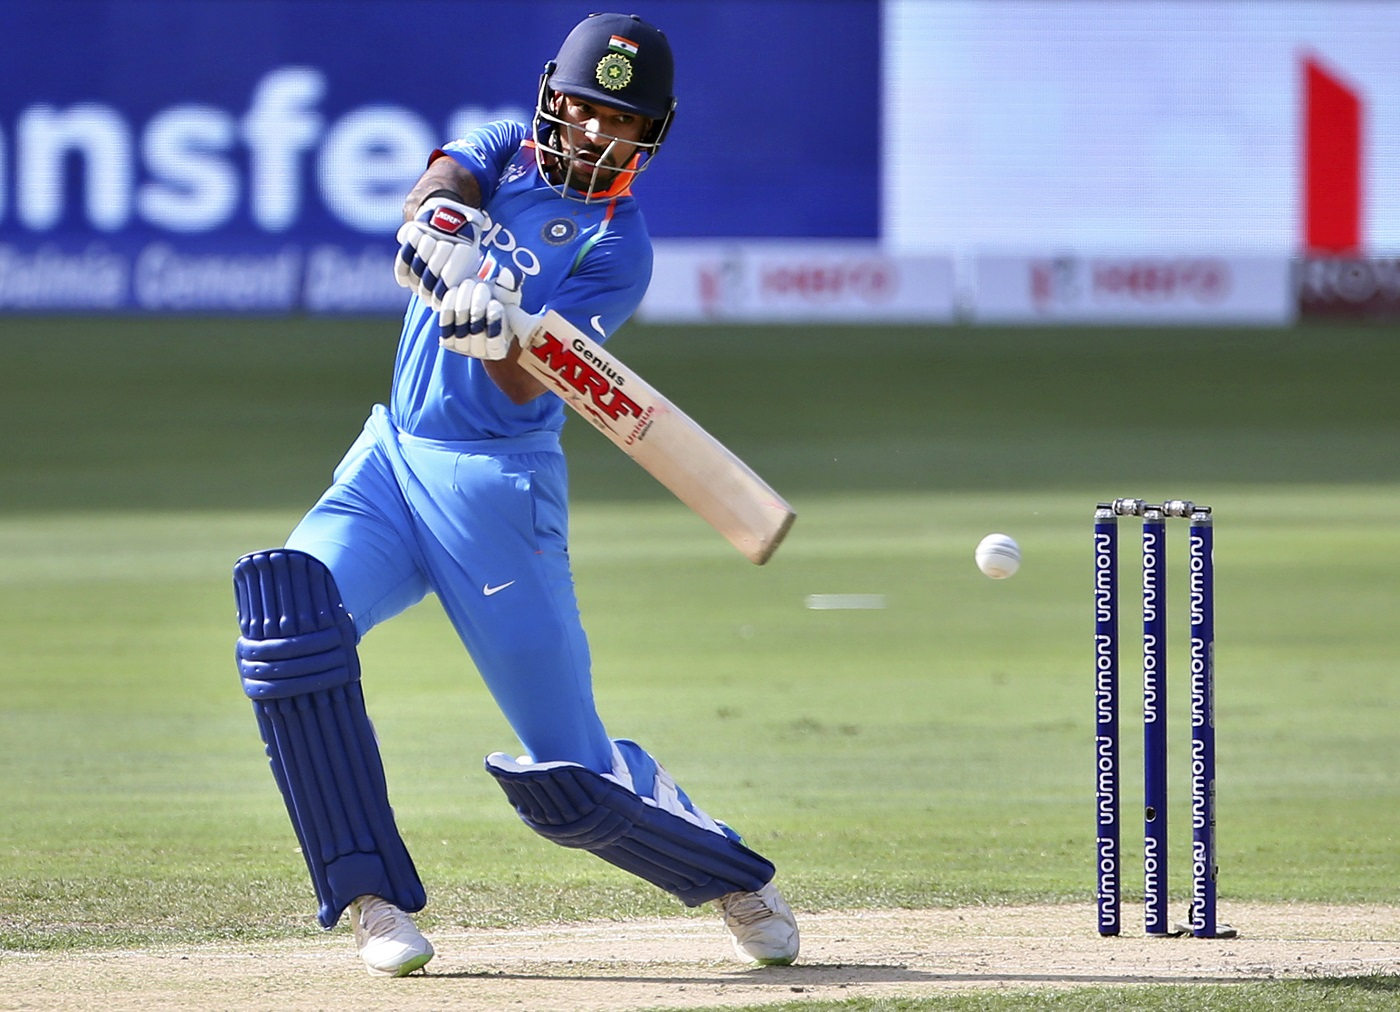 India survive Hong Kong scare, win by 26 runs in Asia Cup encounter